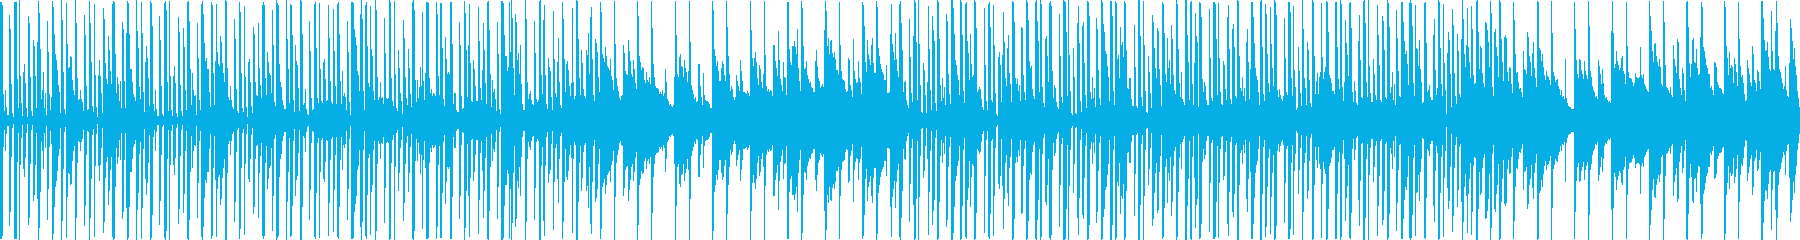 Hearty bright rustic BGM's reproduced waveform